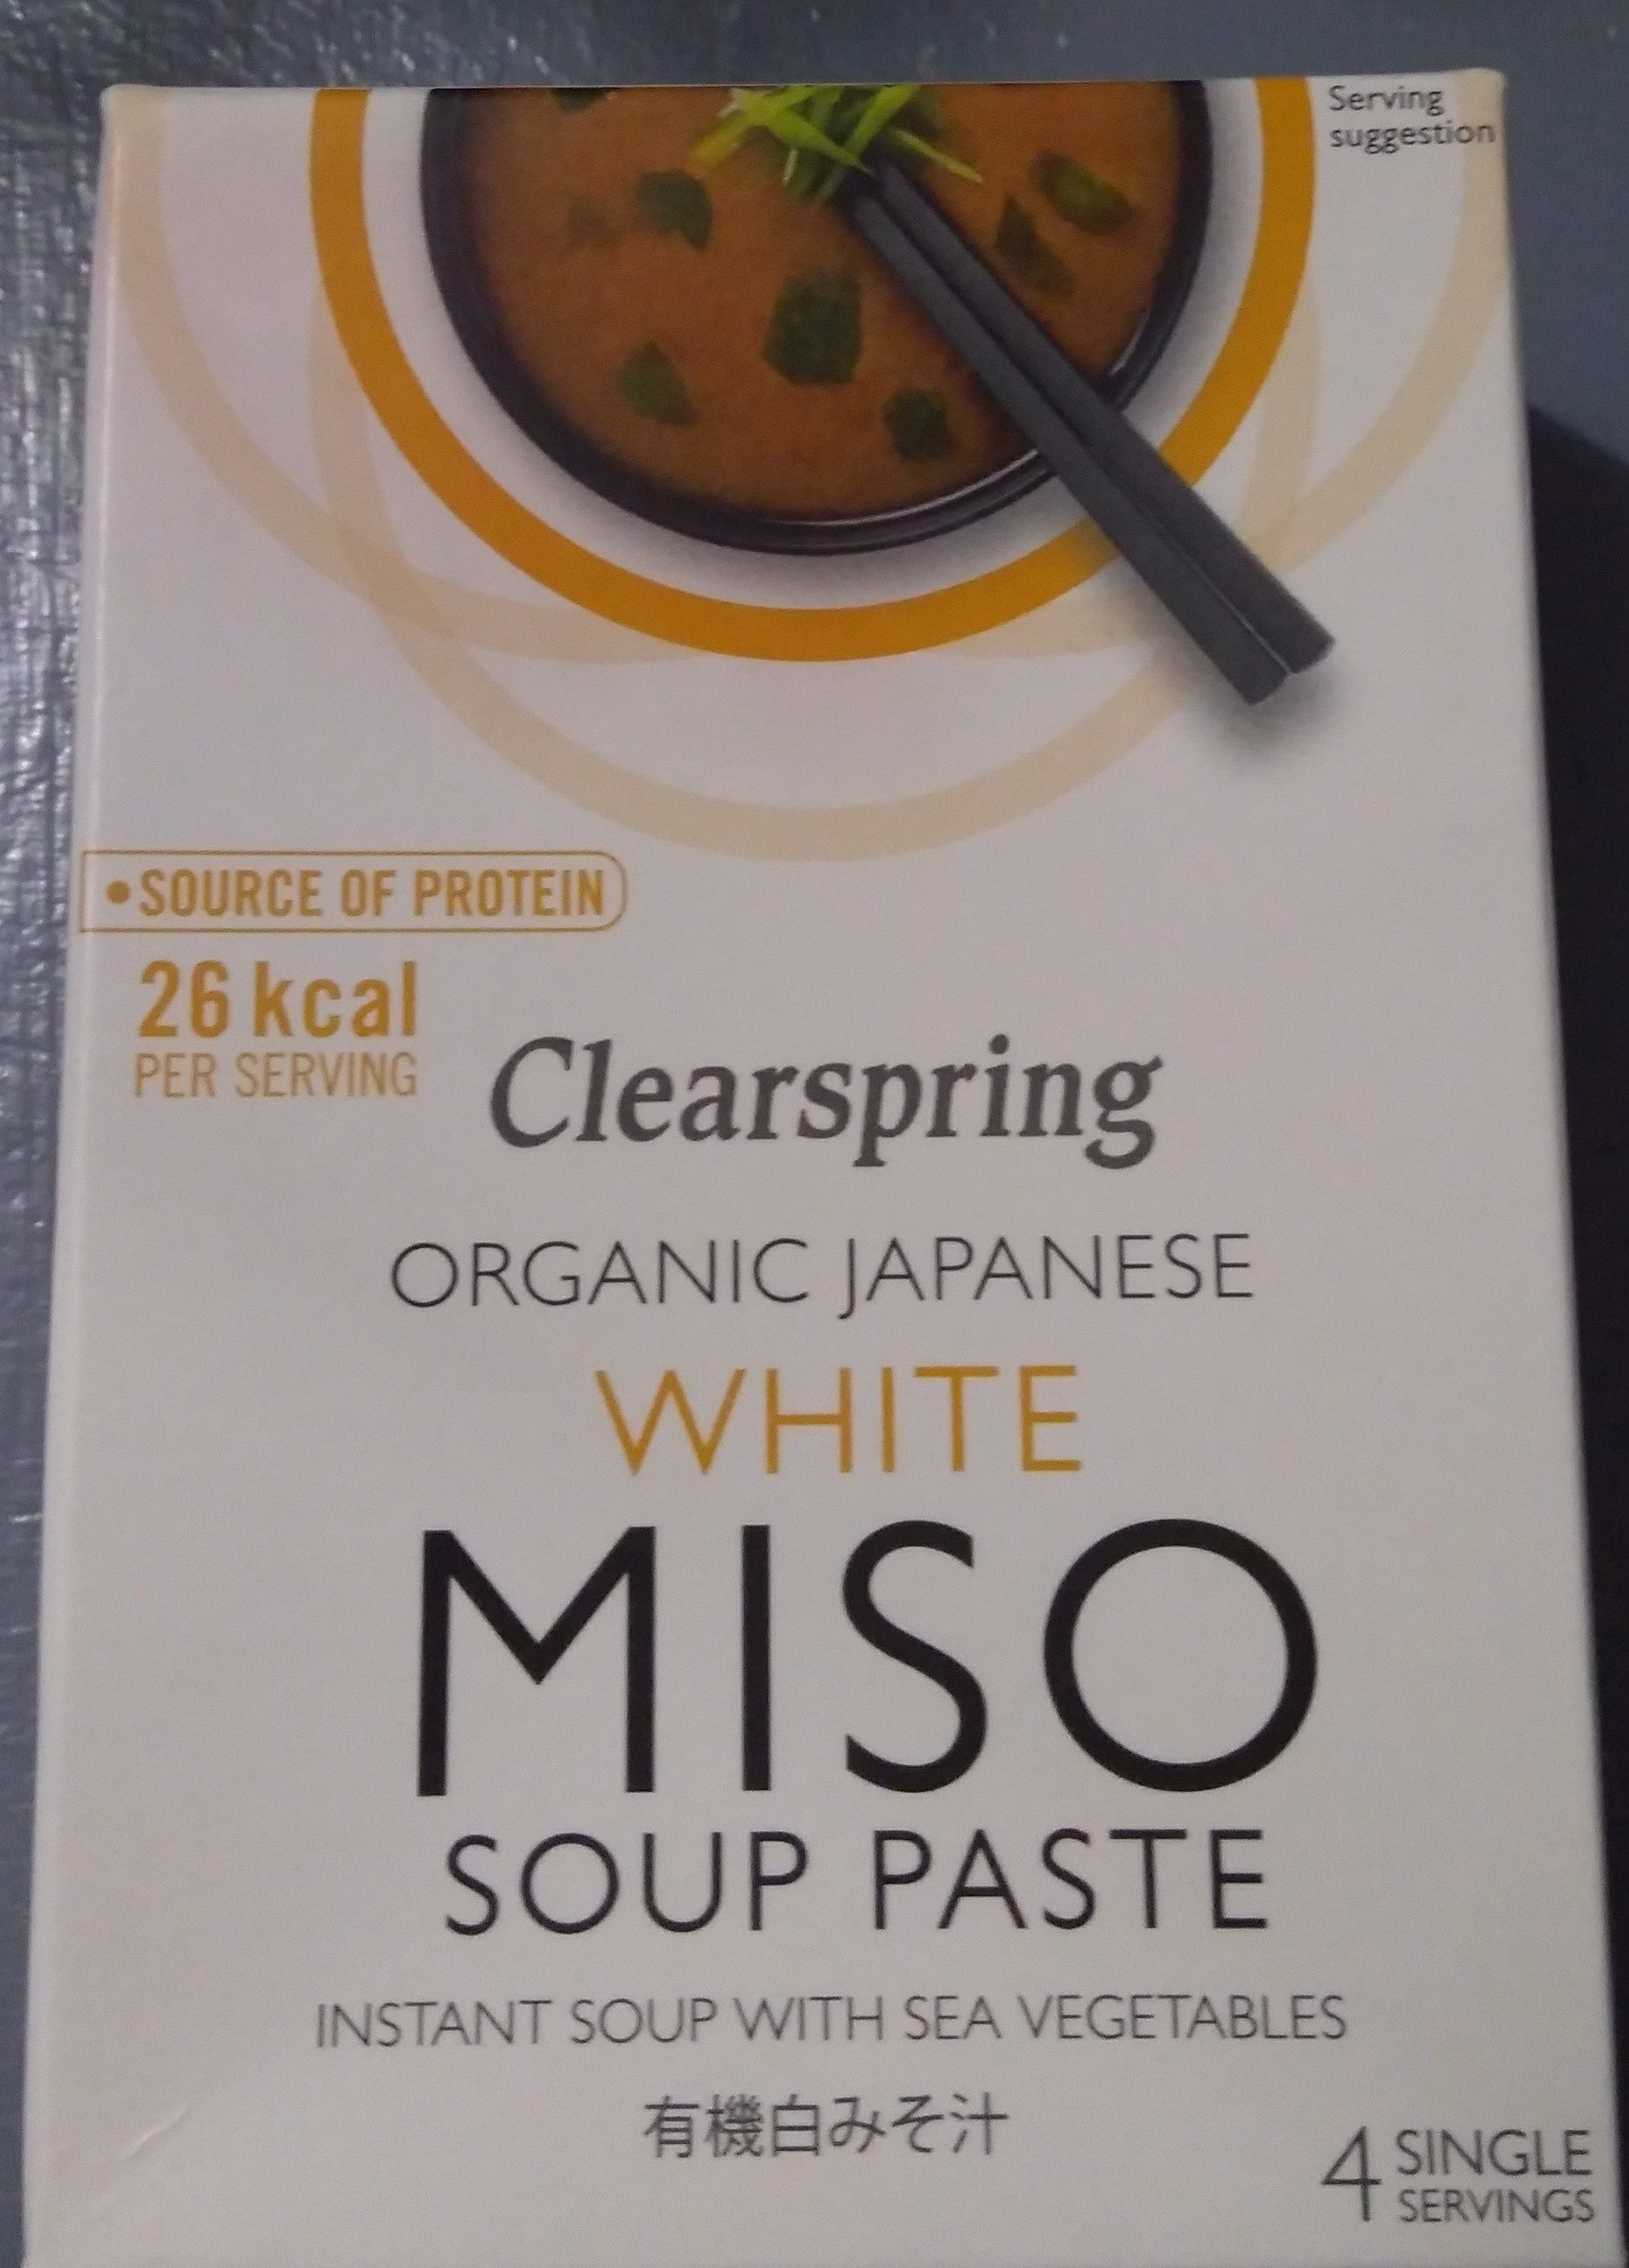 Organic Instant White Miso Soup Paste - Product